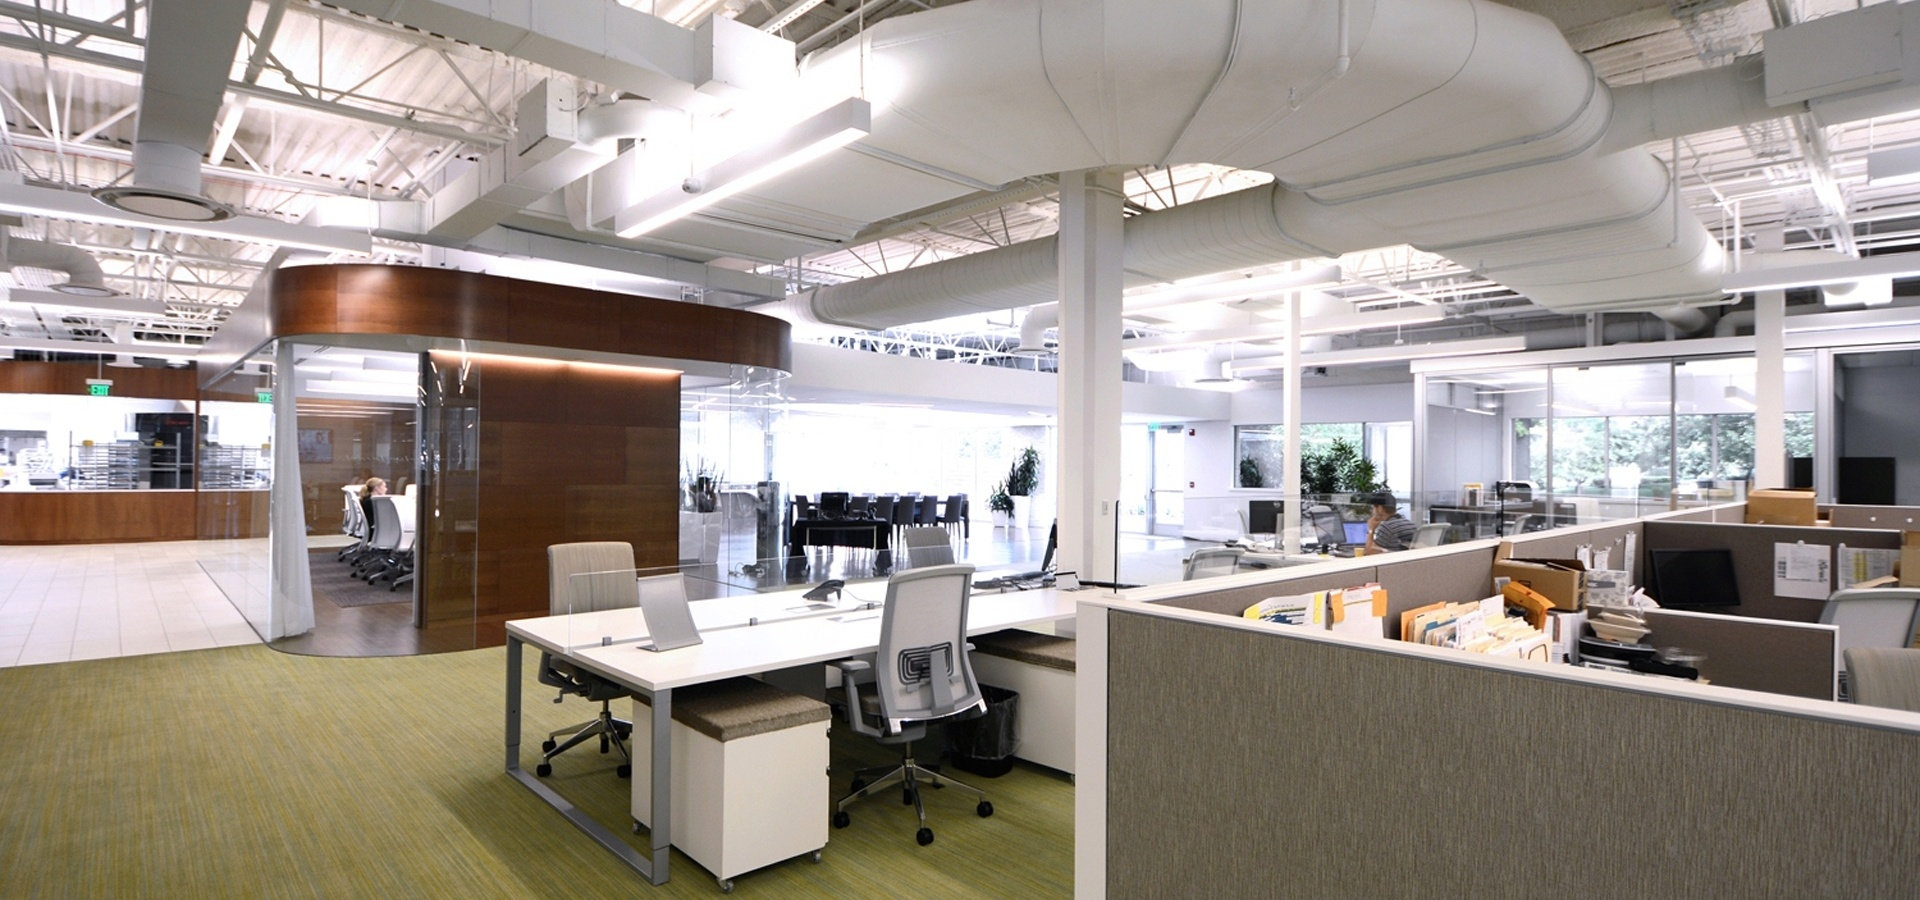 MEP Engineering Design Services for Office Buildings